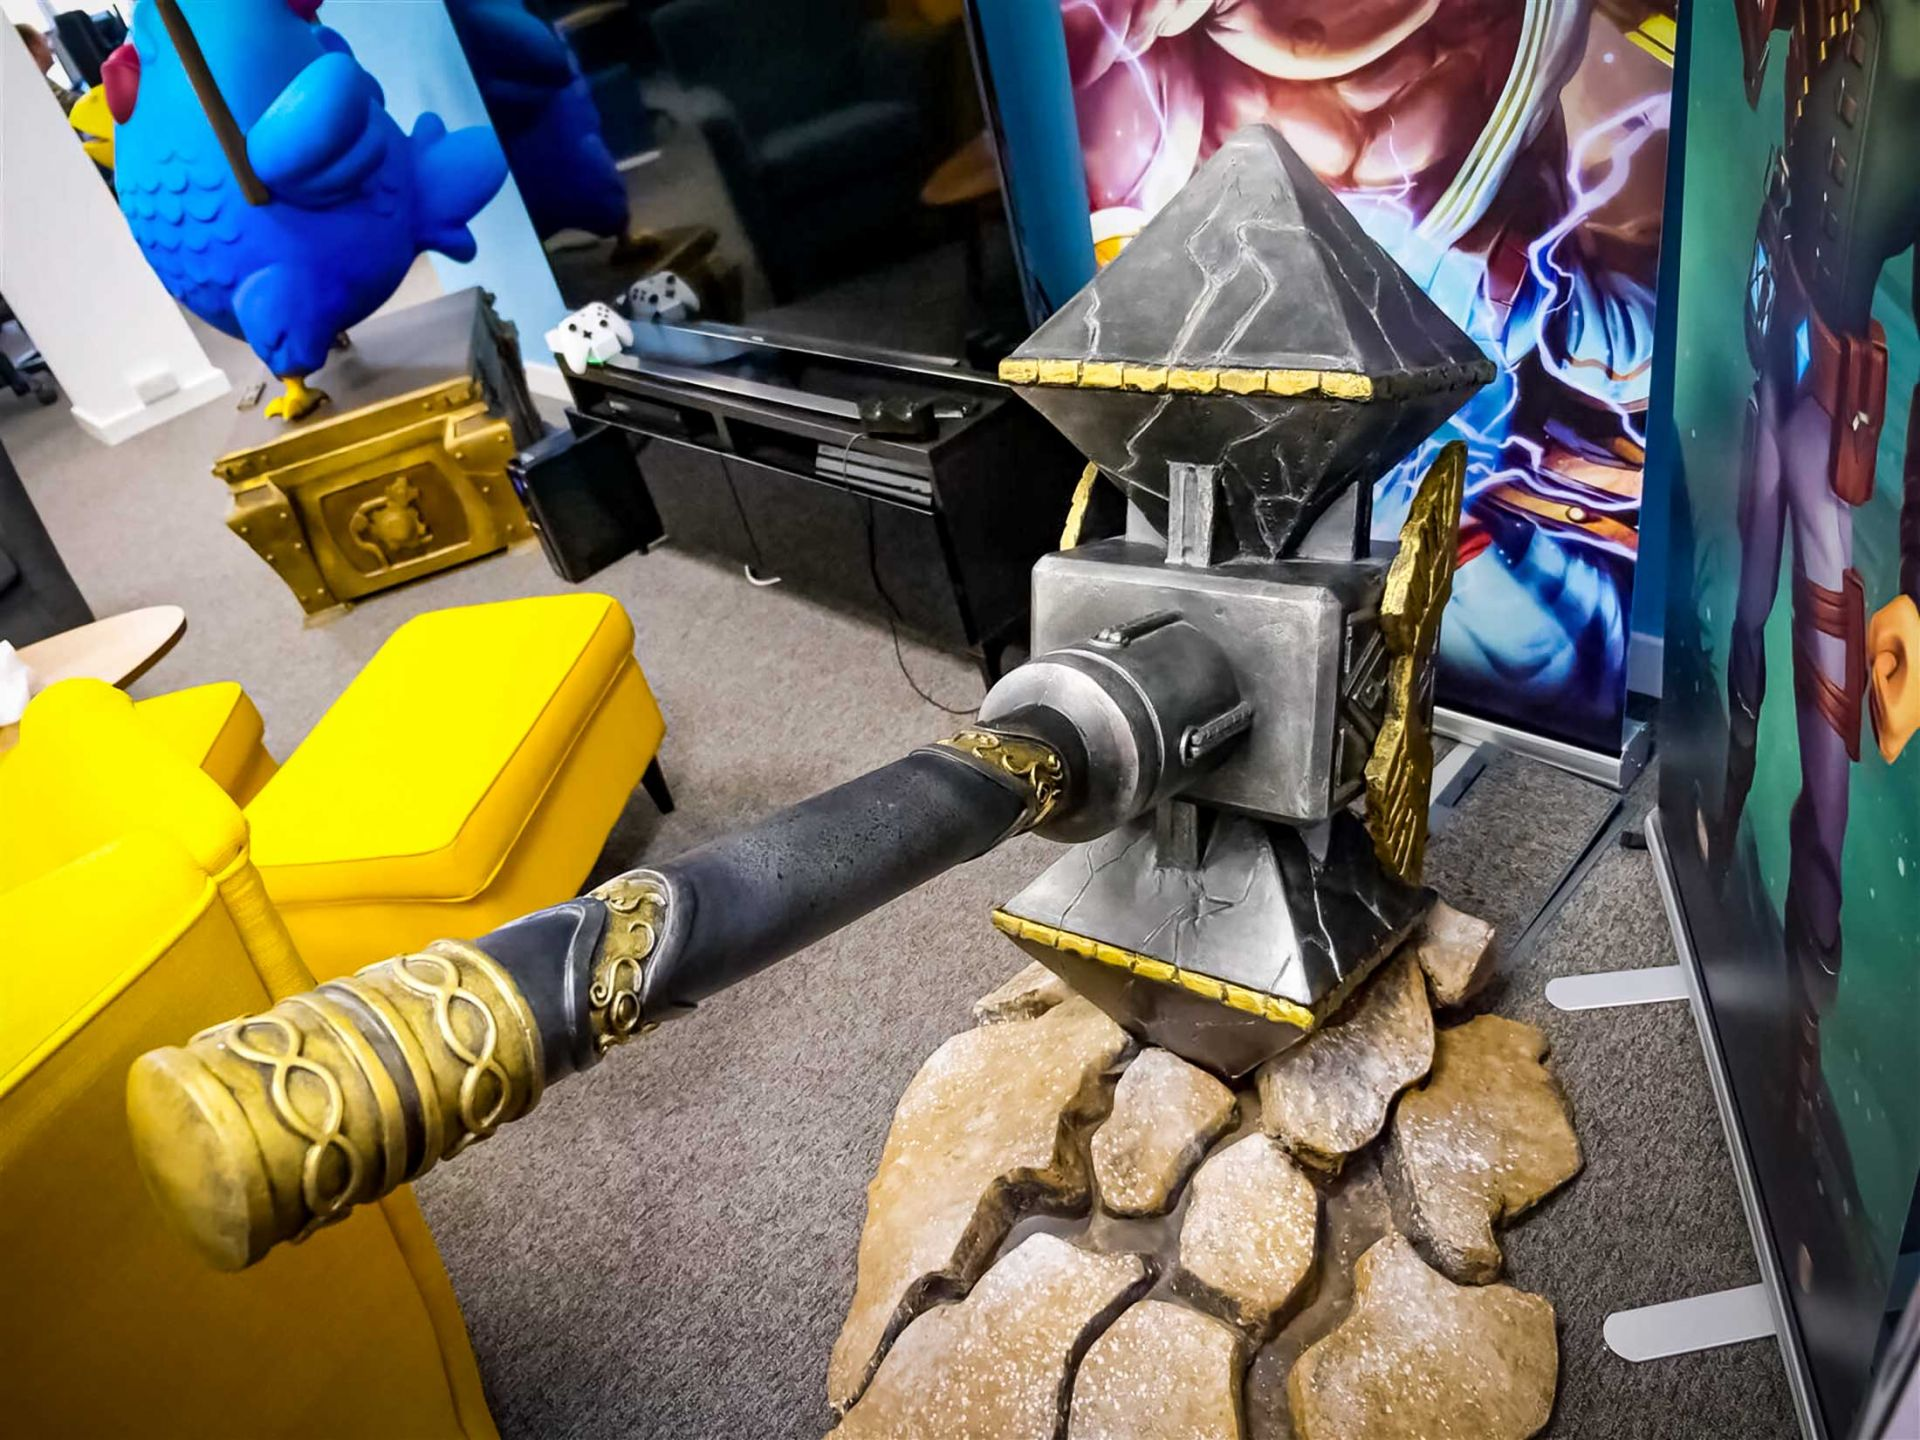 Giant Thor hammer prop in a gaming room on display.